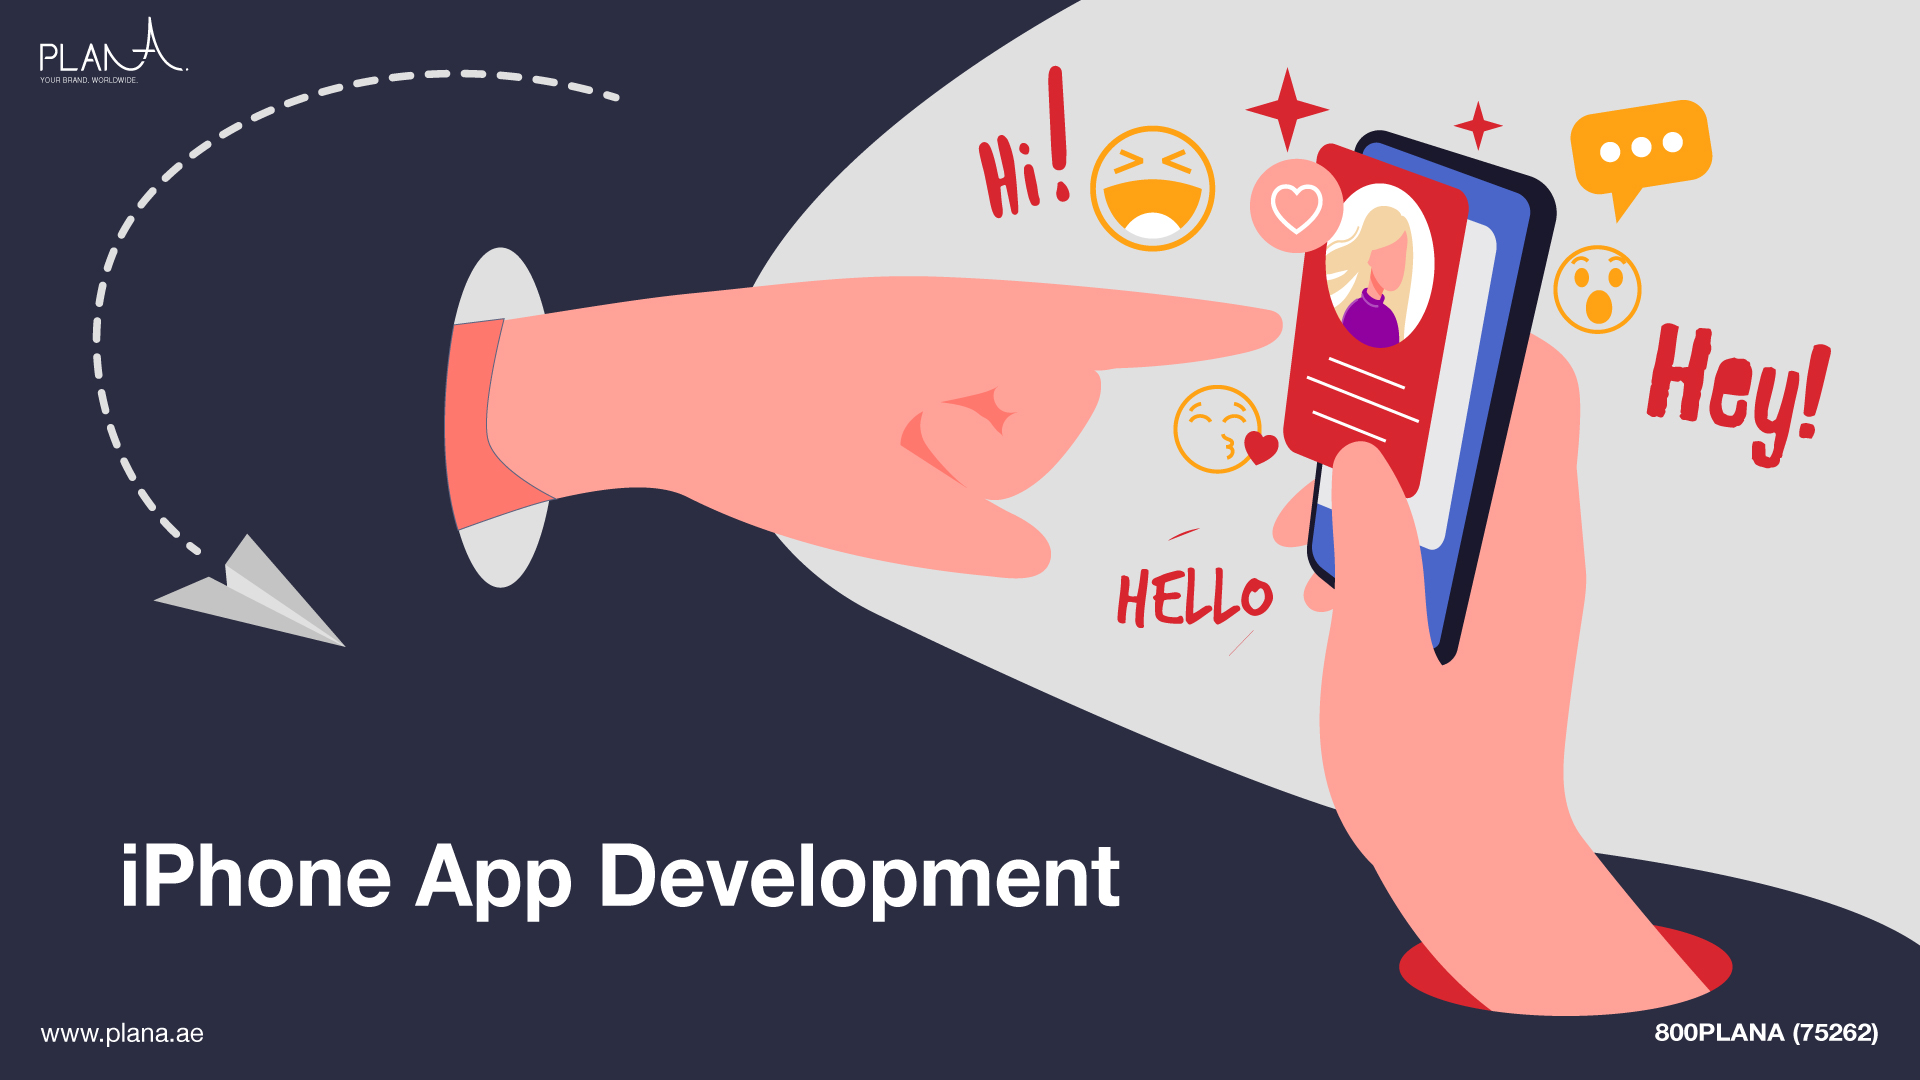 What are the benefits of hiring an iPhone app development company?